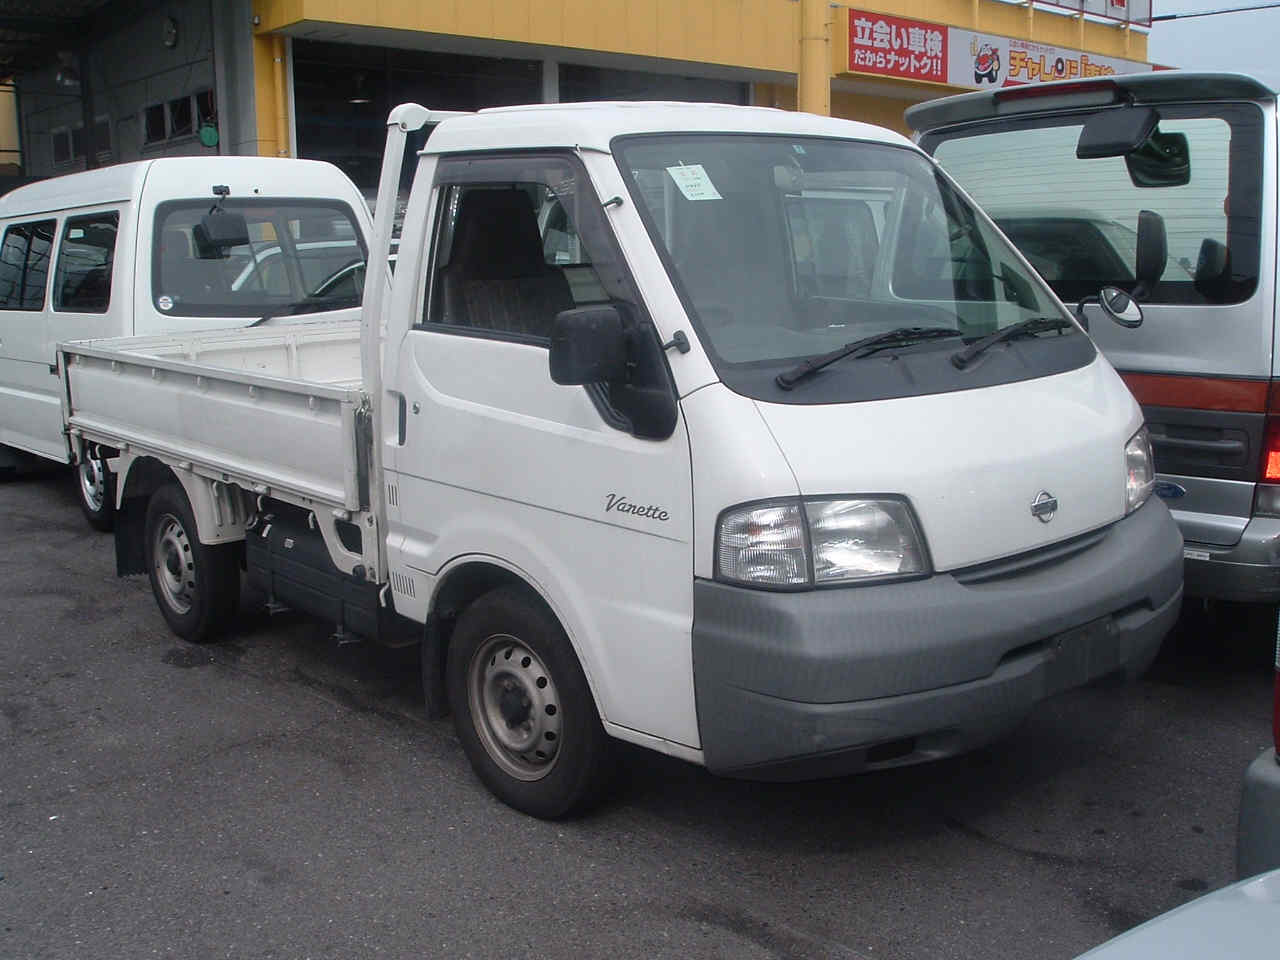 nissan vanette 06 nissan vanette technical details, history, photos on better parts ltd nissan vanette c22 ignition wiring diagram at nearapp.co